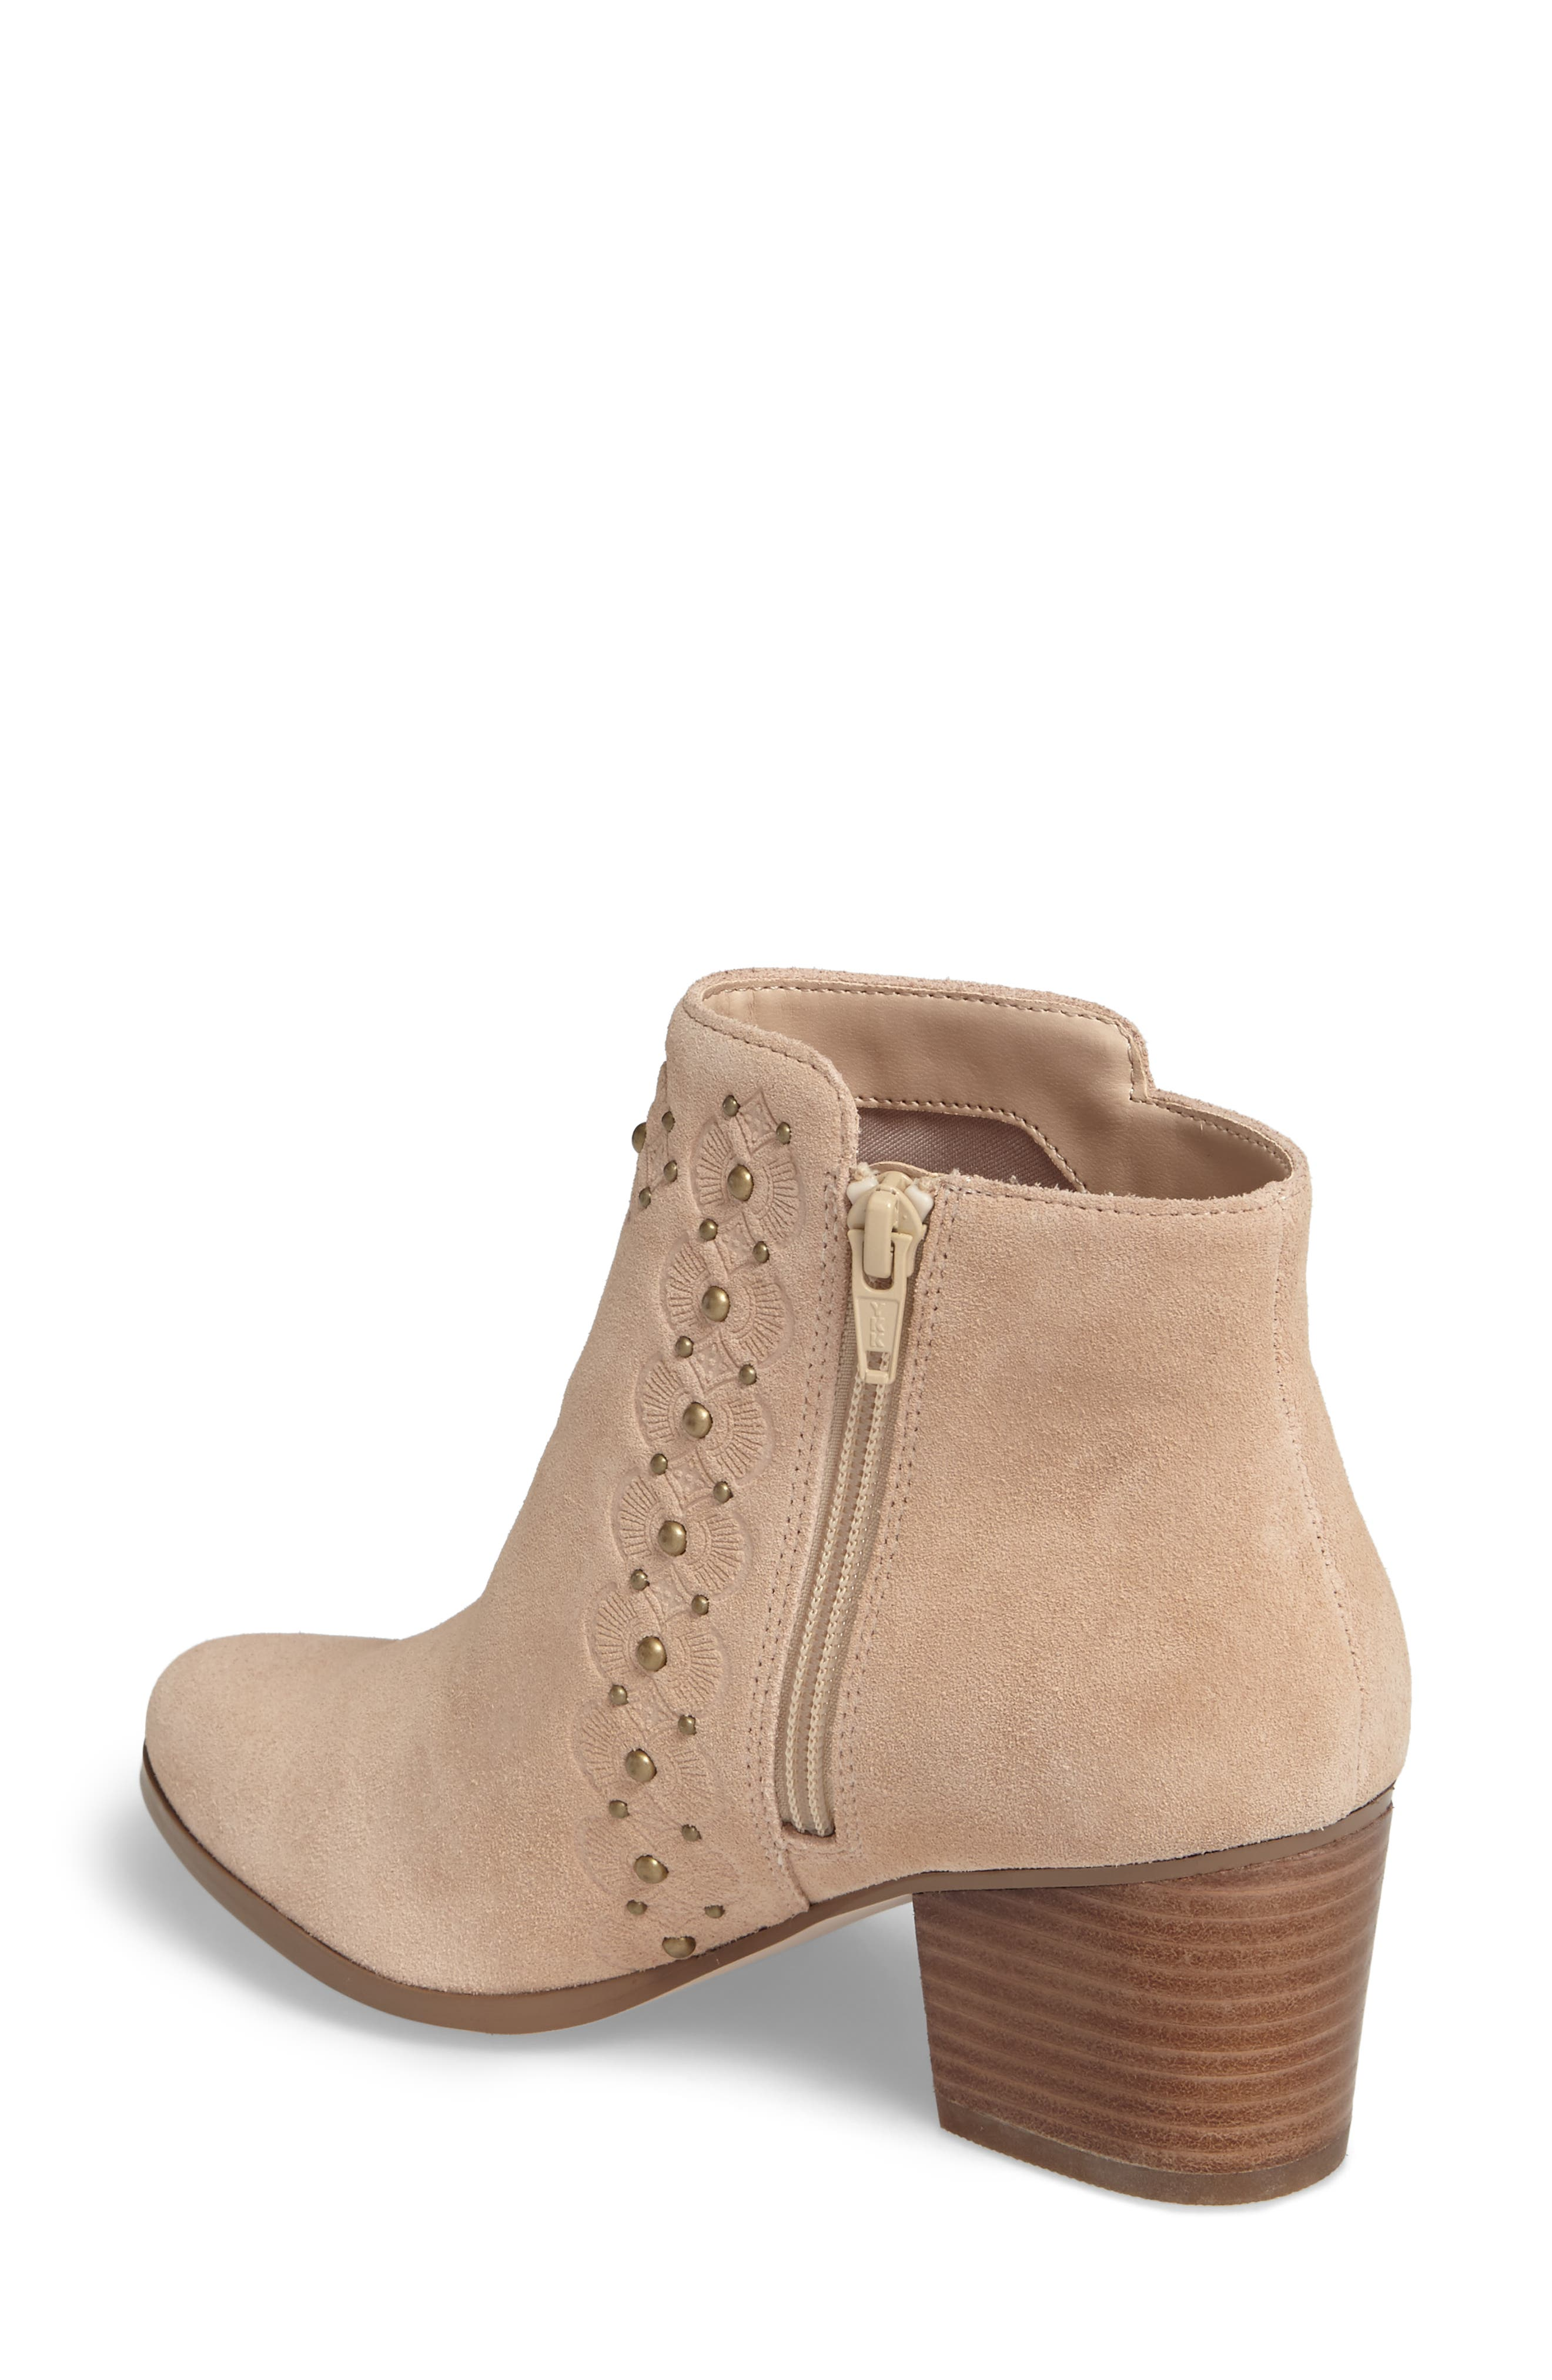 Gala Studded Embossed Bootie,                             Alternate thumbnail 5, color,